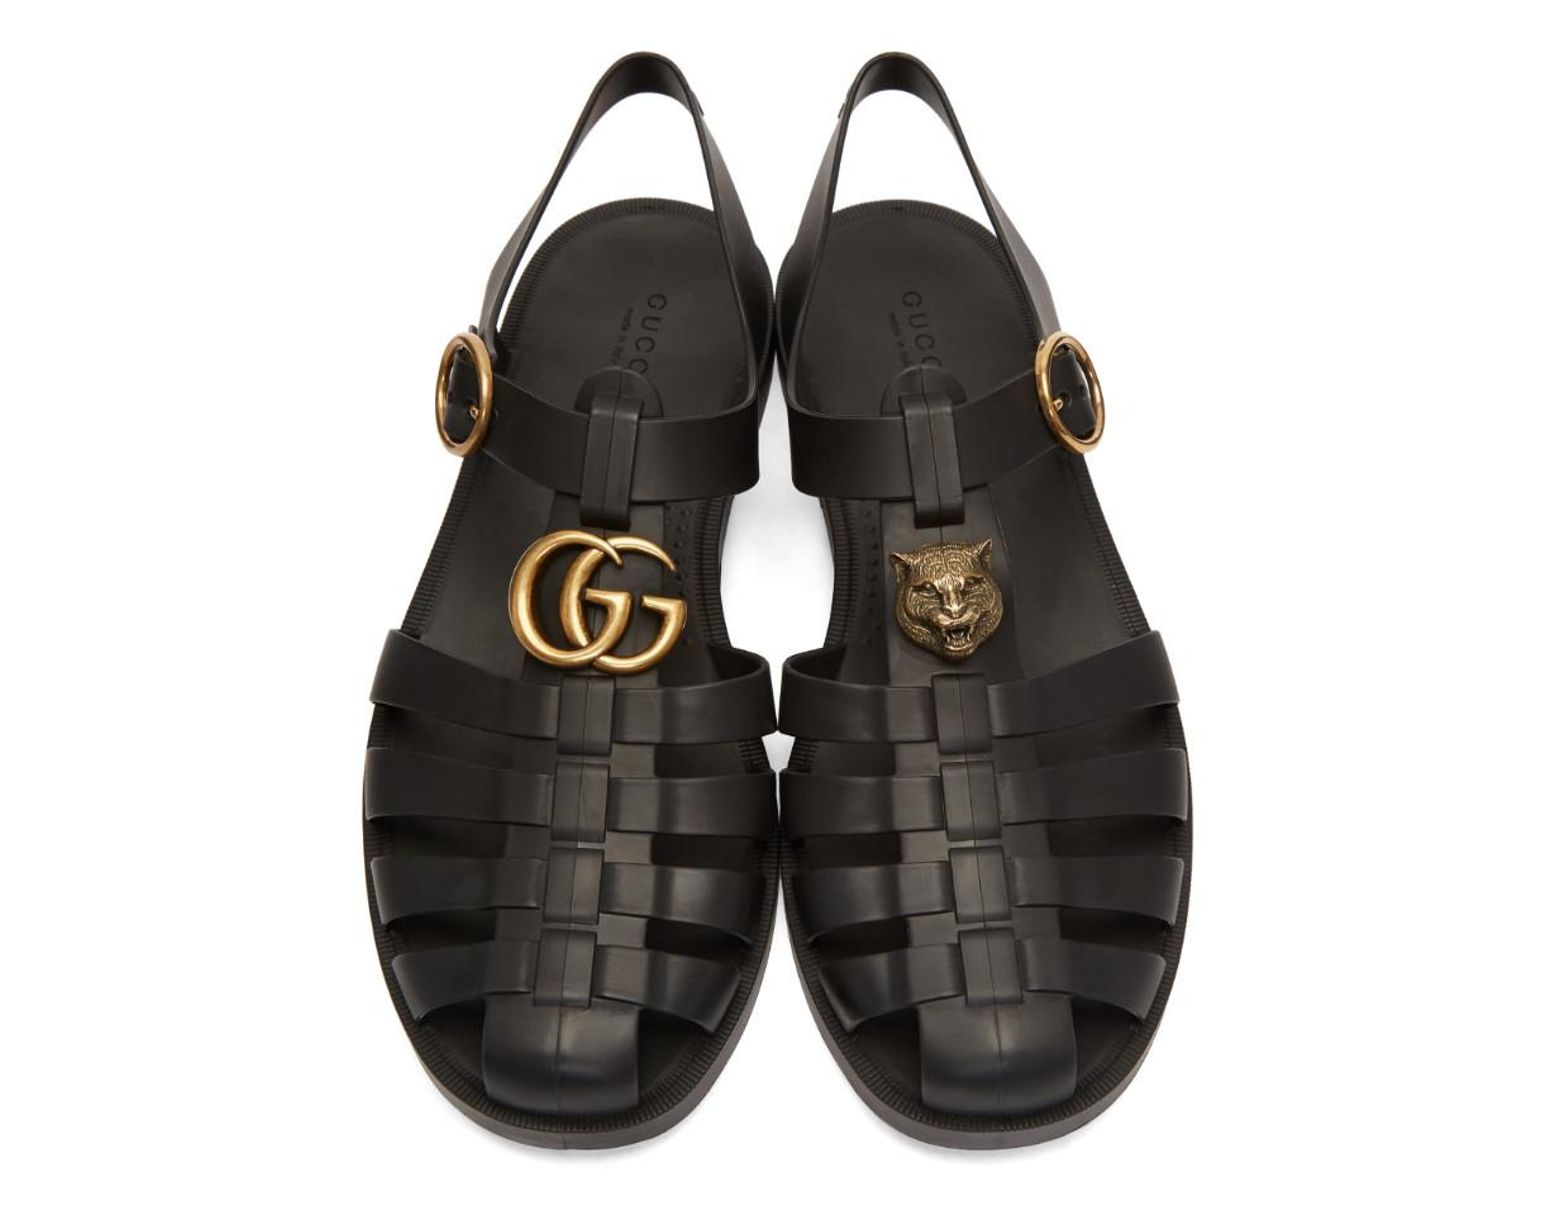 0b2469b5d476 Lyst - Gucci Rubber Buckle Strap Sandals in Black for Men - Save 6%